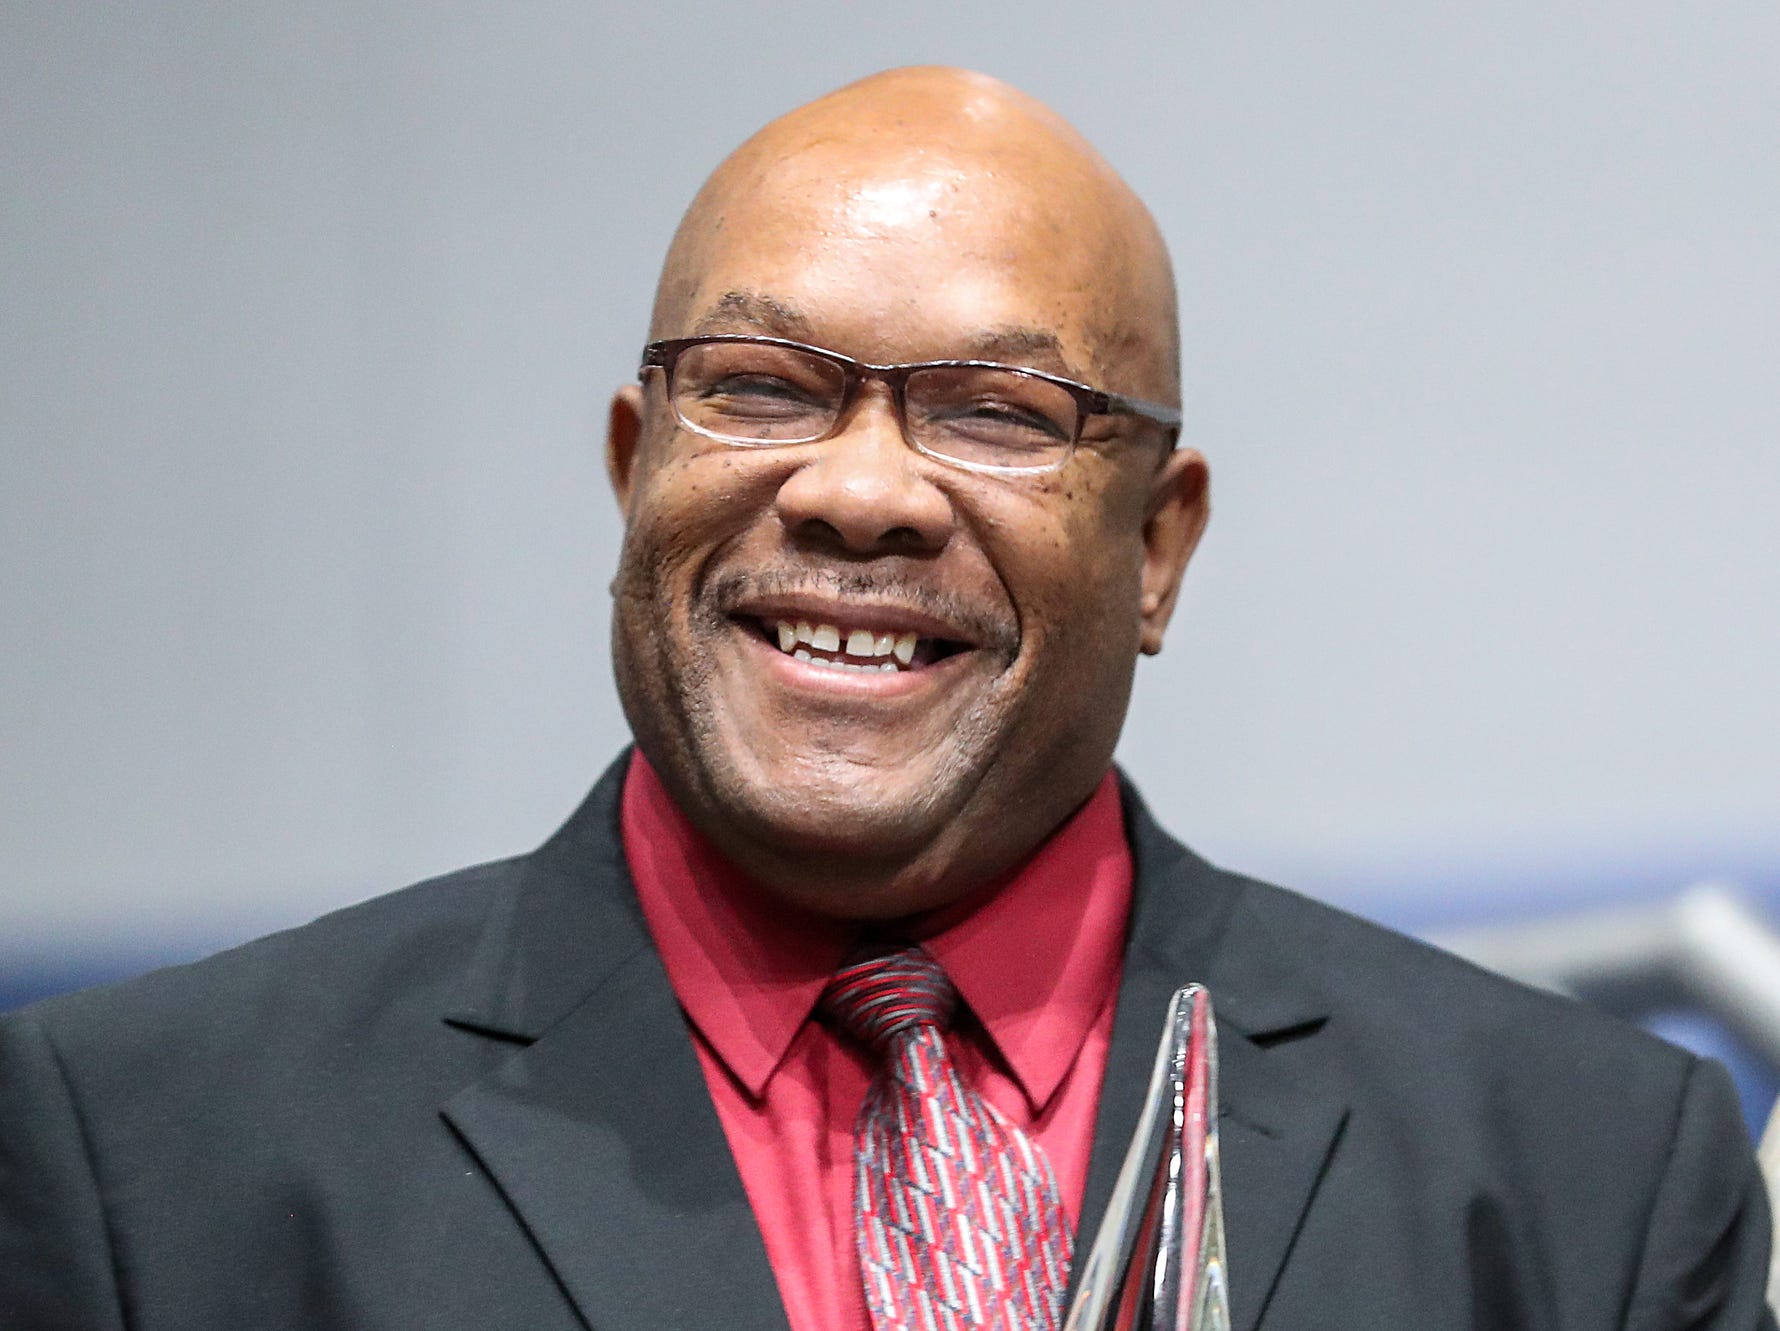 Rev. Darryl Taylor smiles after he received the Dr. Andrew J. Brown Clergy Person of the Year Award during a service celebrating the anniversary of the Emancipation Proclamation at Olivet Missionary Baptist Church in Indianapolis, Tuesday, Jan. 1, 2019. Taylor is Pastor of Paraclete Life at Arlington Heights Baptist Church.